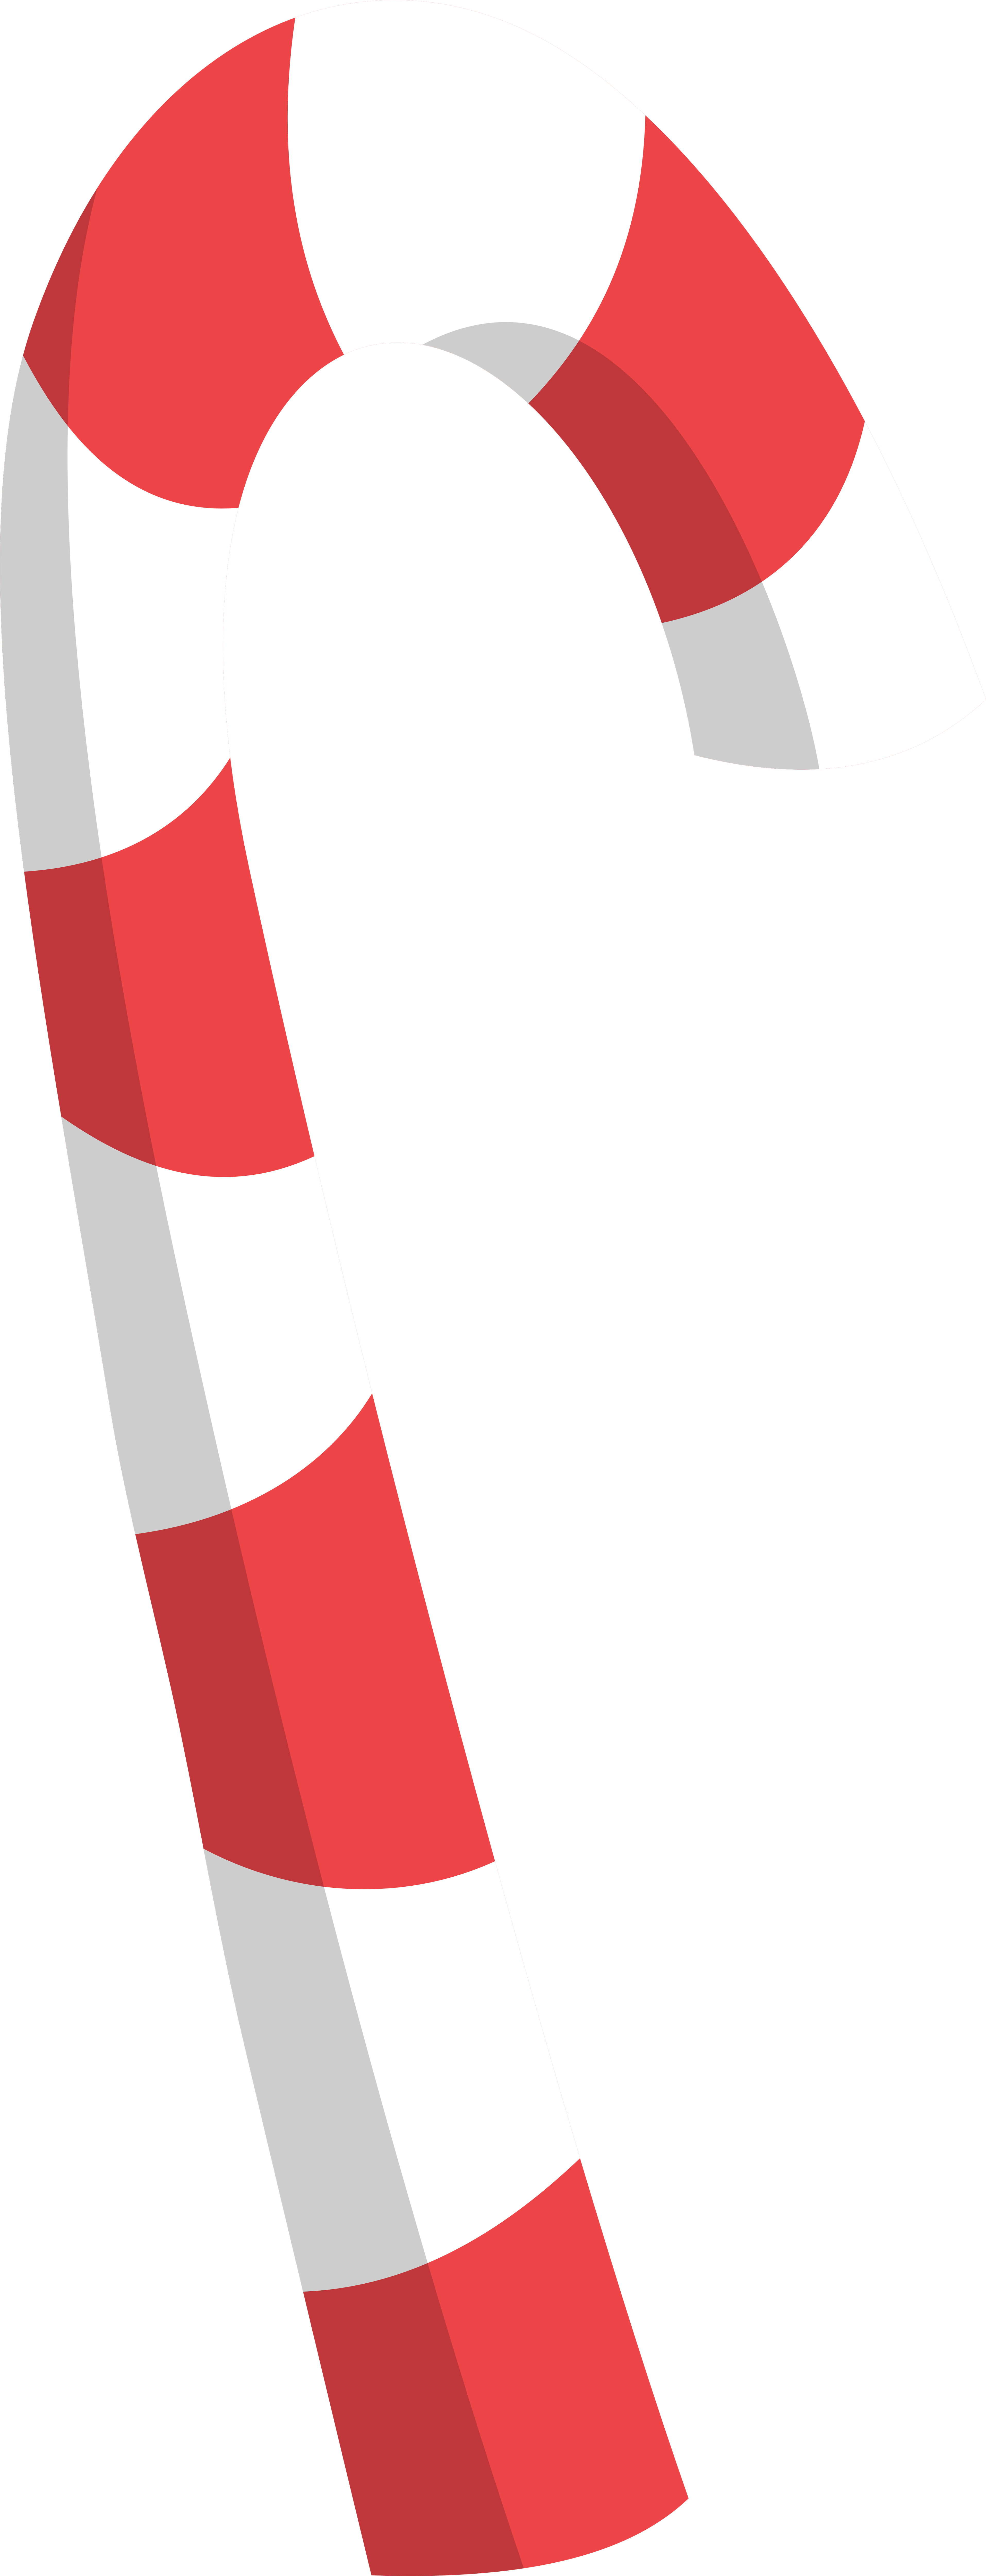 graphic transparent download Candy cane by krazy. Canes clipart vector.